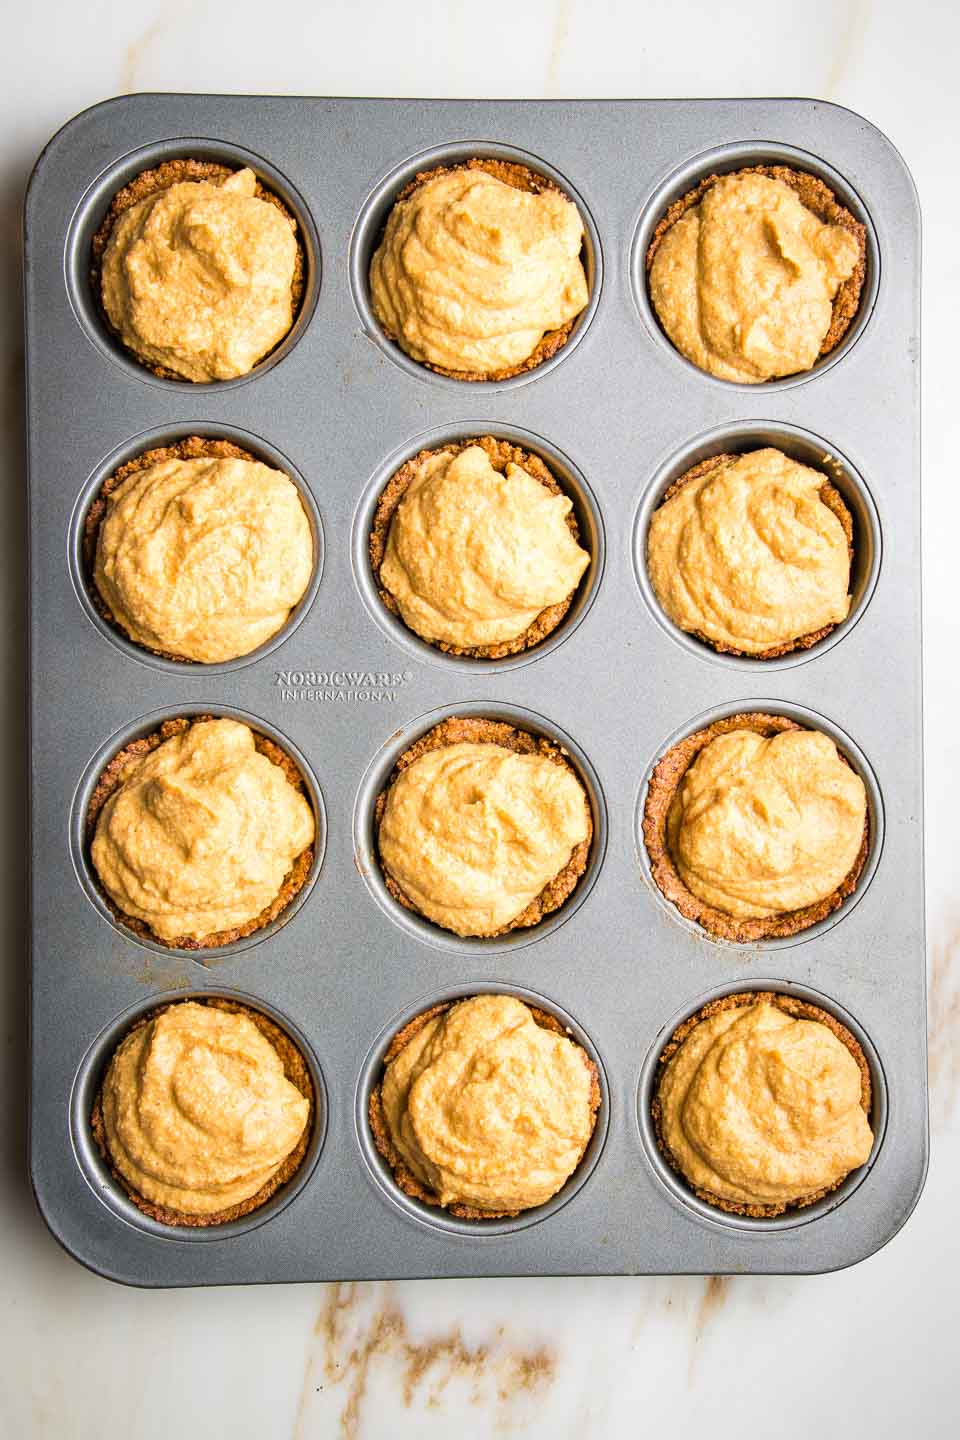 Mini Pumpkin Pies filled into muffin tins and ready to bake.